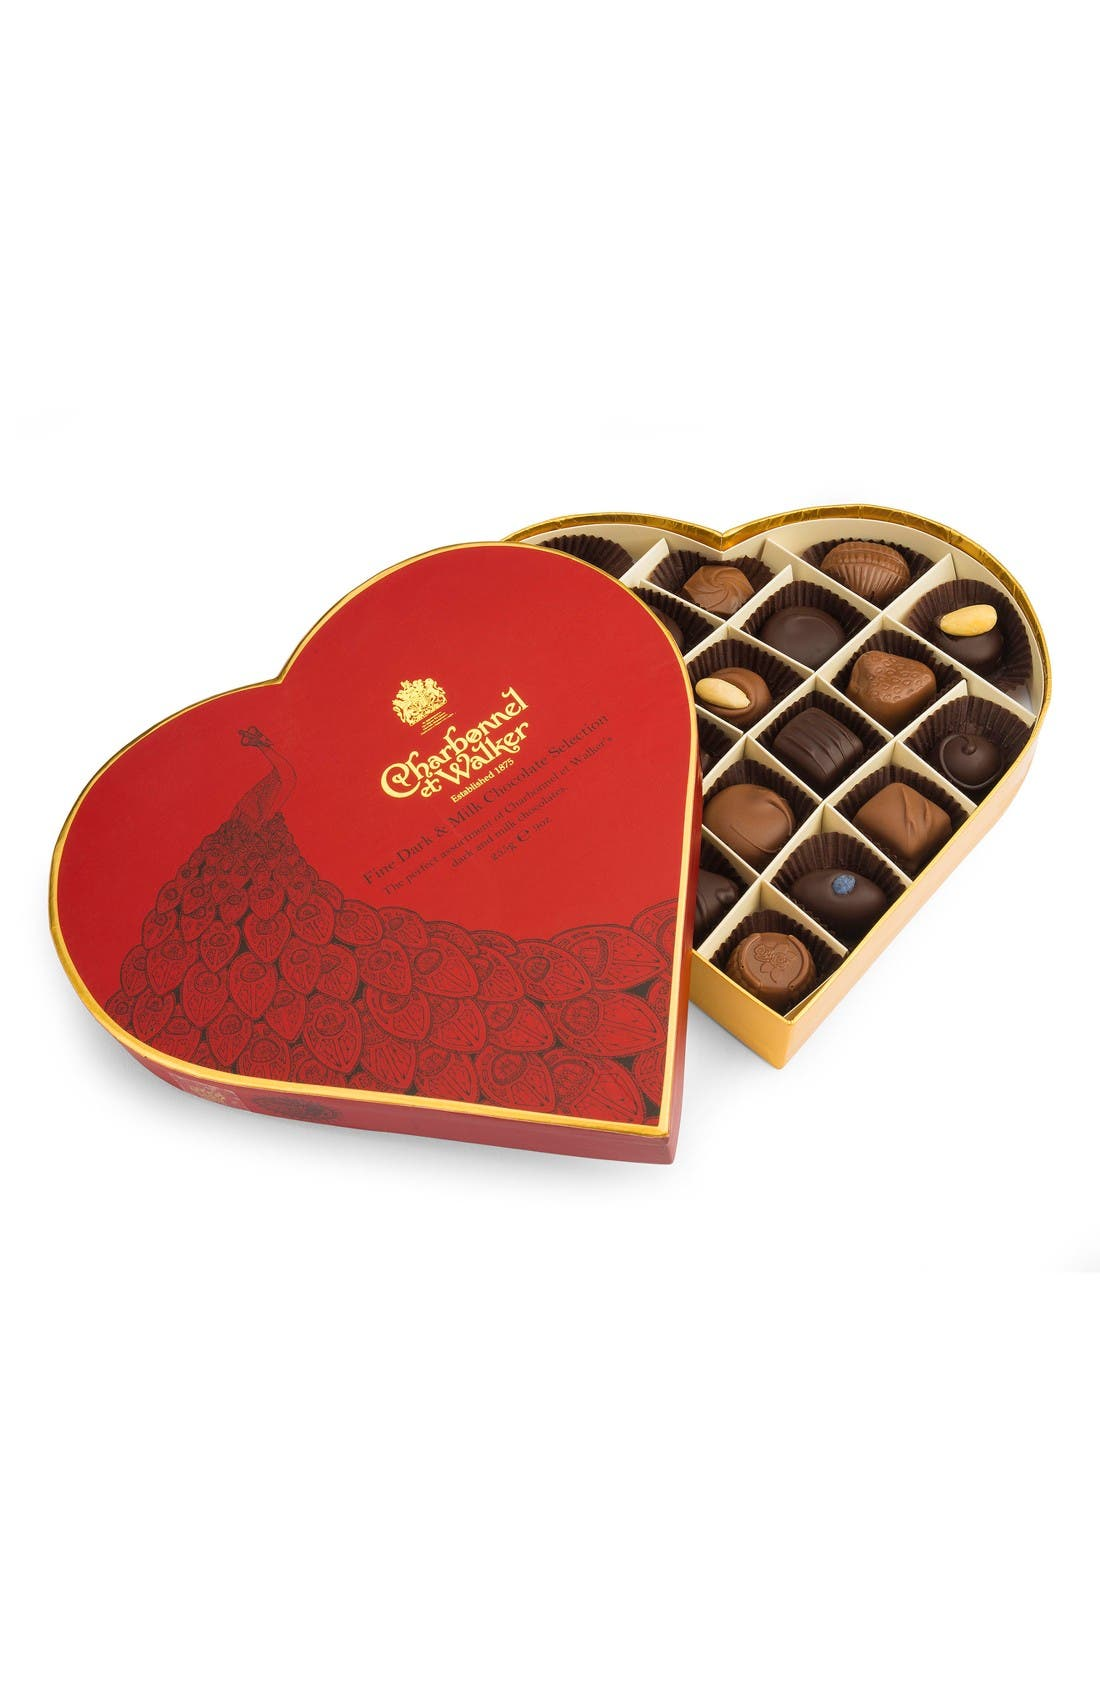 Assorted Chocolates in Heart Shaped Gift Box,                             Main thumbnail 1, color,                             Red